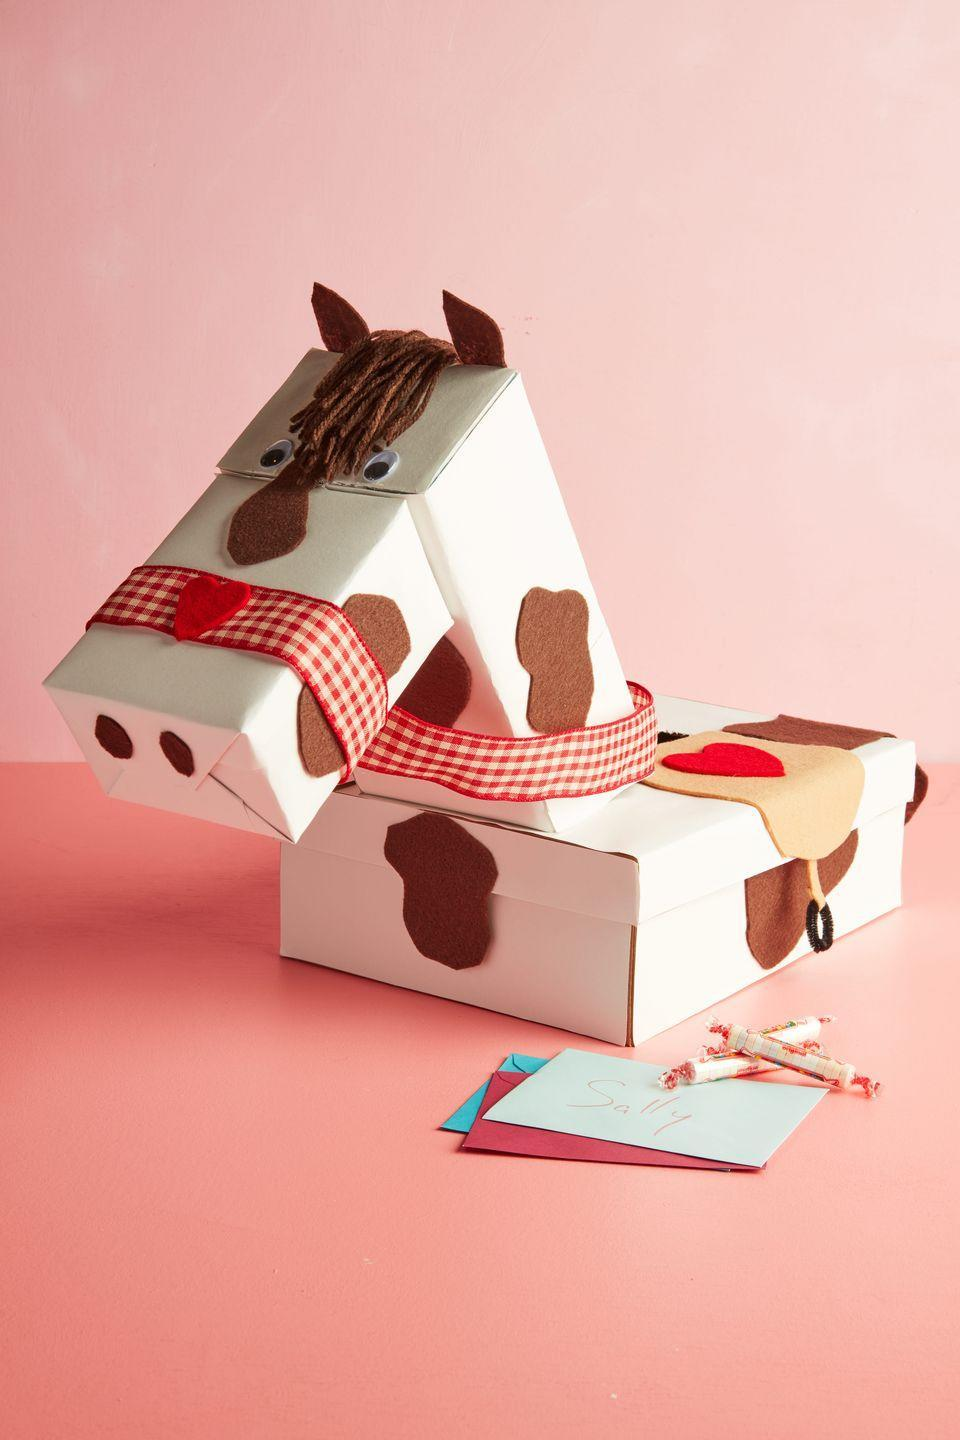 "<p>The ideal project for the horse loving kiddo in your house. Neigh!<strong><br></strong></p><p><strong>To make:</strong> Wrap a rectangular <a href=""https://www.amazon.com/Factory-Direct-Craft-Decorate-Rectangle/dp/B00CMB8TCQ/ref=sr_1_44"" rel=""nofollow noopener"" target=""_blank"" data-ylk=""slk:papier-mâché"" class=""link rapid-noclick-resp"">papier-mâché</a><a href=""https://www.amazon.com/Factory-Direct-Craft-Decorate-Rectangle/dp/B00CMB8TCQ/ref=sr_1_44"" rel=""nofollow noopener"" target=""_blank"" data-ylk=""slk:box"" class=""link rapid-noclick-resp""> box</a> in white craft paper. Cut a slit in the top. Cut one end a shoe box at an angle to create the neck; wrap in white craft paper. Cut a second shoe box to create the horse's muzzle; wrap in white craft paper. Attach parts together with hot glue. Cut spots, ears, saddle, and decorative details from dark brown and light brown felt. Cut hearts from red felt. Attach to the horse with a glue stick. Attach a thin strip of felt to the bottom of the saddle. Make two small loops from black pipe cleaners and attach to the bottom of the strip to create stirrups. Wrap red gingham ribbon around the nose and neck to create the reins and noseband; attach with glue stick. Glue googly eyes to the face. Cut short lengths of <a href=""https://www.amazon.com/Bernat-Yarn-Small-Ball-Brown/dp/B0100JA3KW/ref=sr_1_8"" rel=""nofollow noopener"" target=""_blank"" data-ylk=""slk:brown yarn"" class=""link rapid-noclick-resp"">brown yarn</a> and attach between the ears to create the mane.</p><p><a class=""link rapid-noclick-resp"" href=""https://www.amazon.com/flic-flac-inches-Assorted-Fabric-Patchwork/dp/B01GCRXBVE/ref=sr_1_2_sspa?tag=syn-yahoo-20&ascsubtag=%5Bartid%7C10050.g.25844424%5Bsrc%7Cyahoo-us"" rel=""nofollow noopener"" target=""_blank"" data-ylk=""slk:SHOP FELT"">SHOP FELT</a></p>"